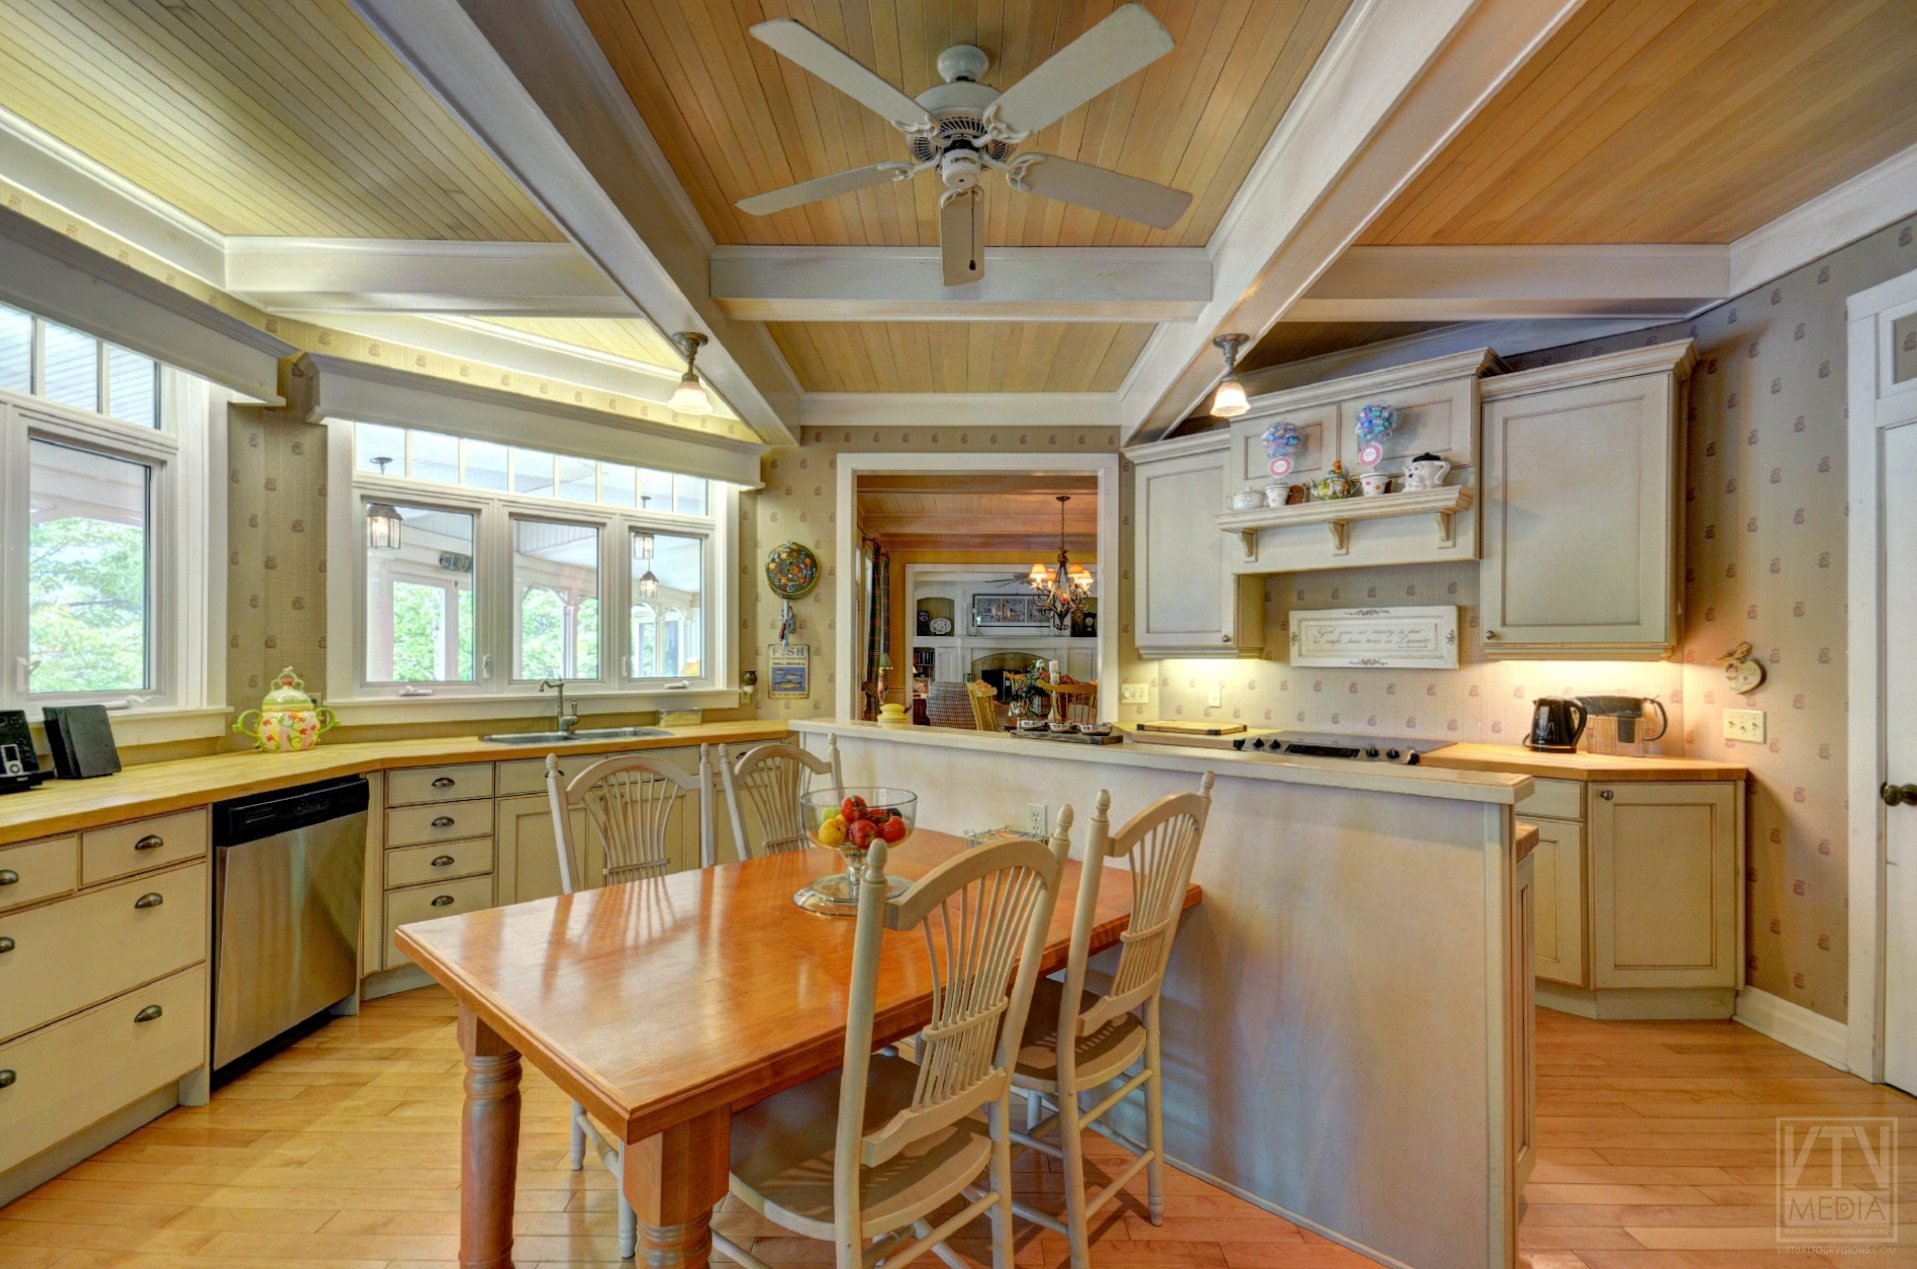 milford-bay-cottage-for-sale-1022-milford-manor-road-2